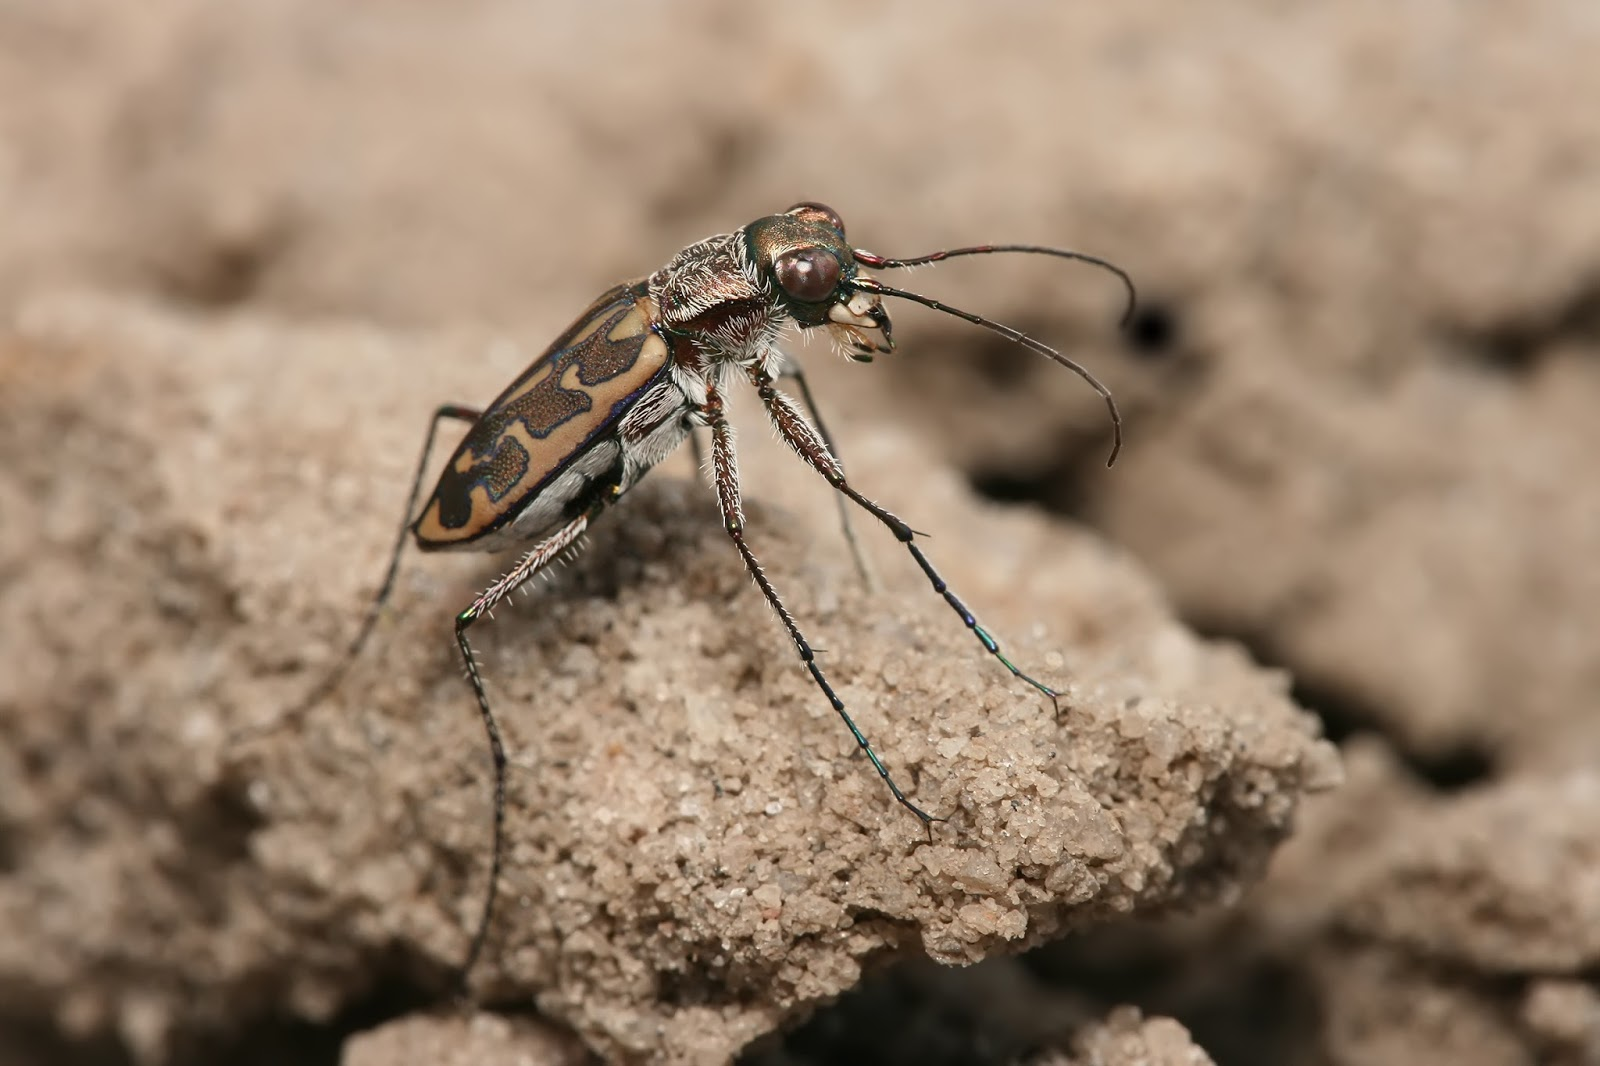 Insects: Tiger beetle Lophyra sp